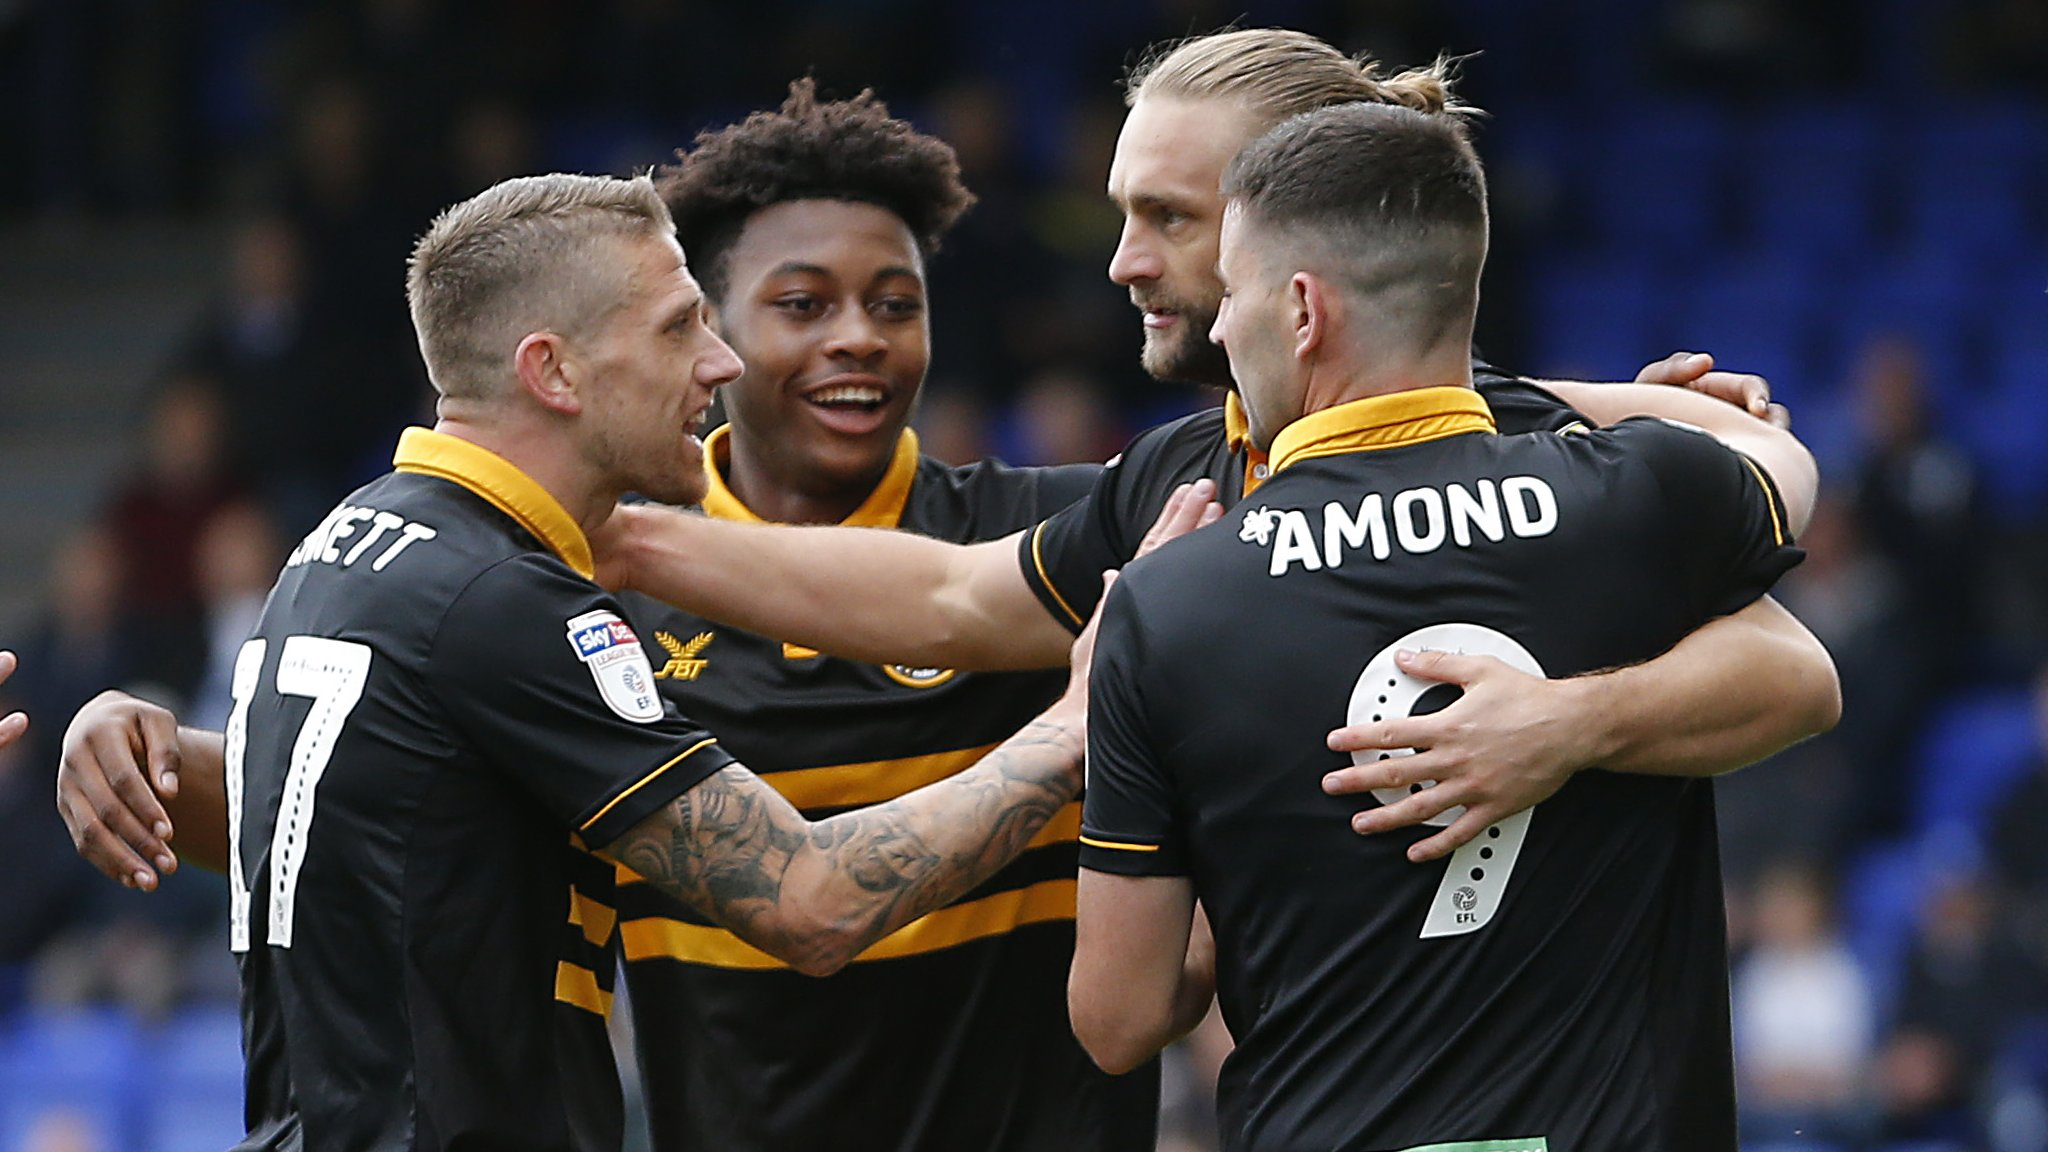 Tranmere Rovers 0-1 Newport County